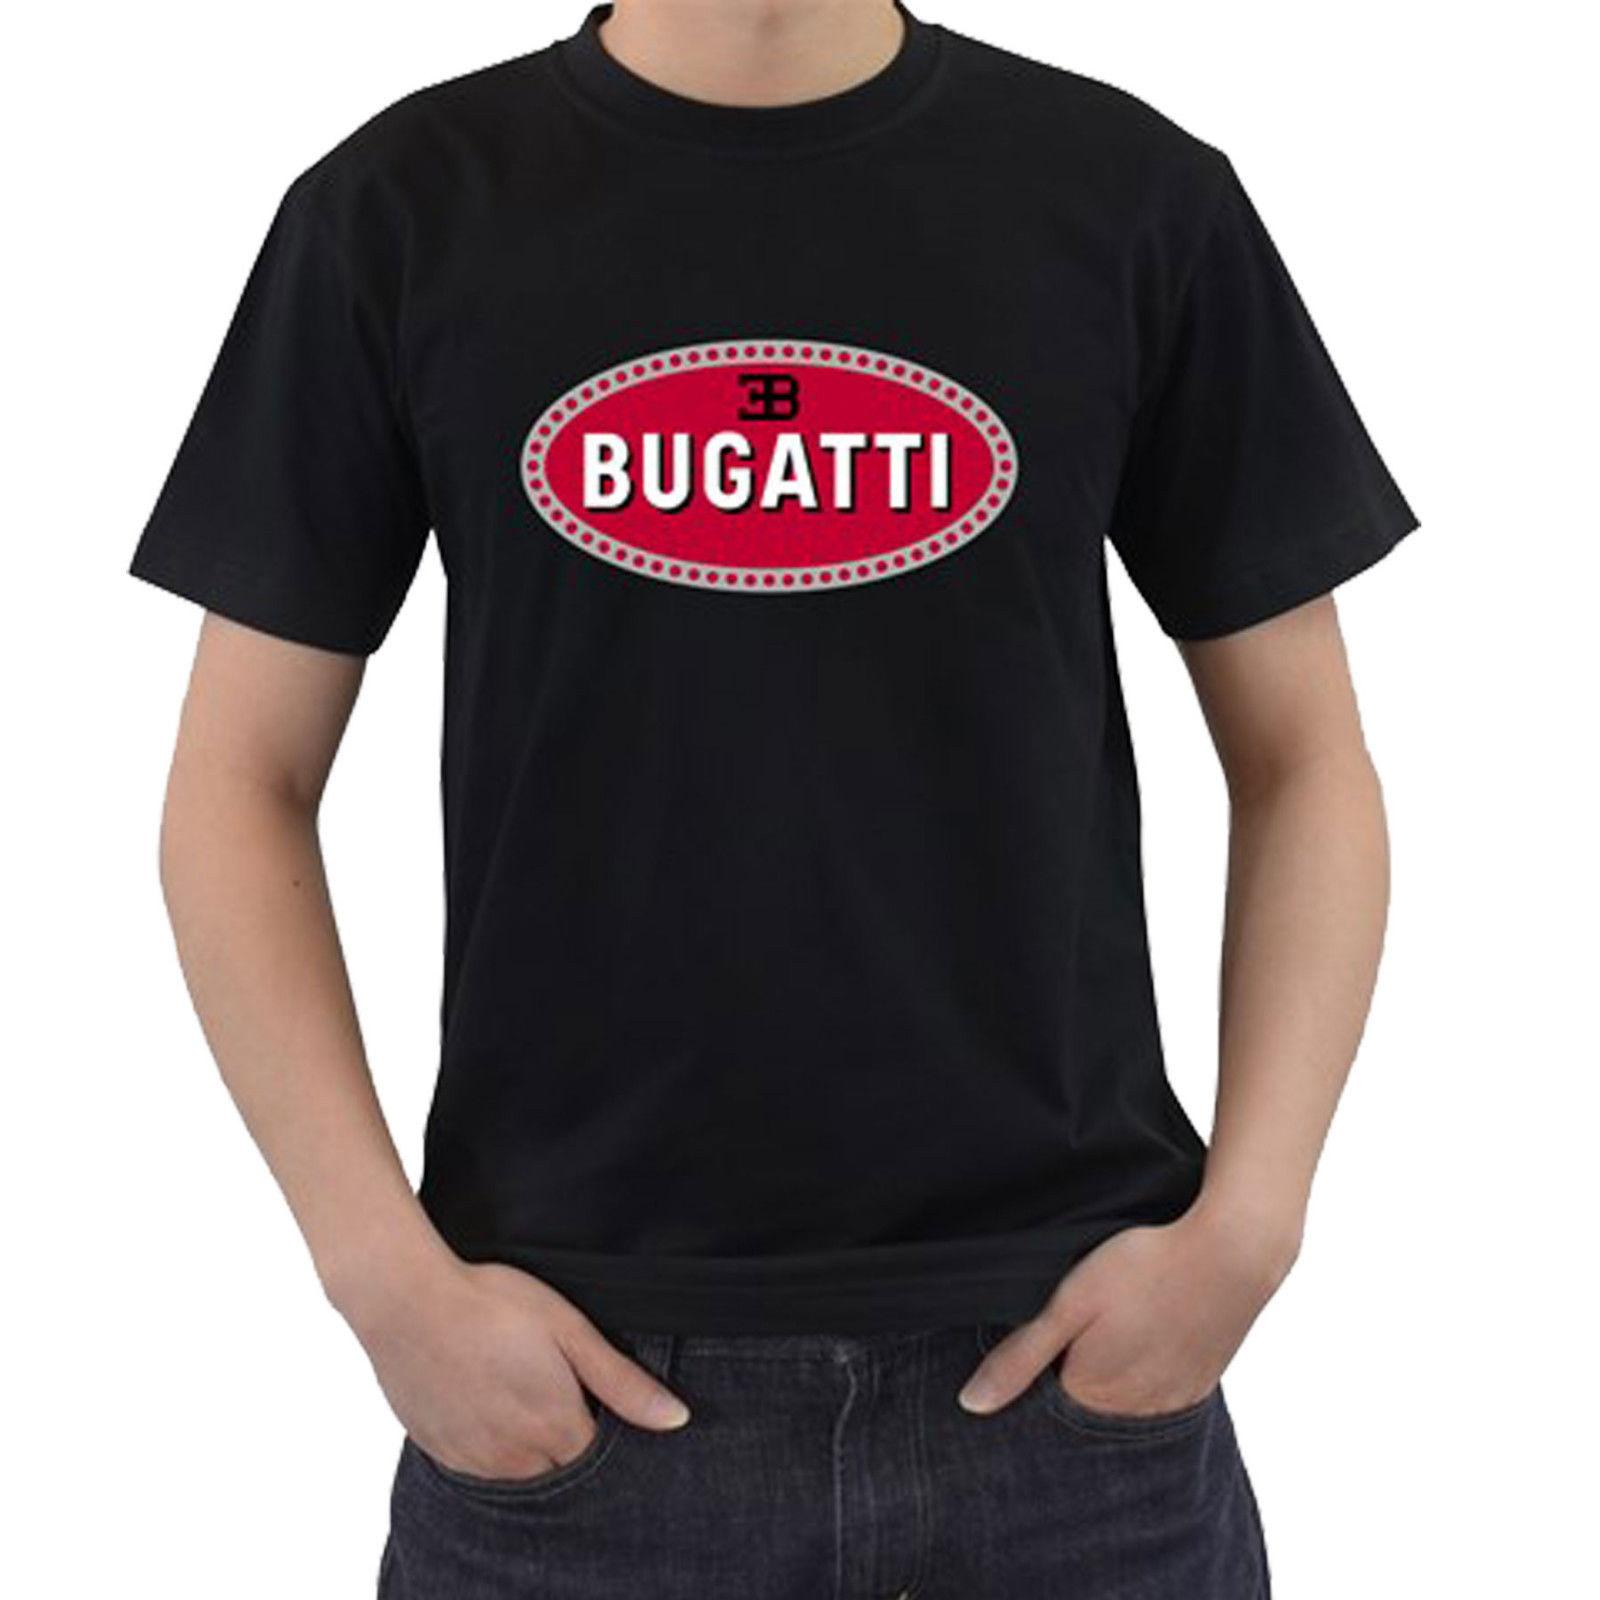 dd287c18773 New TEE BUGATTI Car Logo Vintage T Shirts Size S 3XL Unisex Brand Clothes  Summer 2018 Sale 100 % Cotton T Shirt Mbappe France Tee Shirt Sites T Shirt  1 From ...